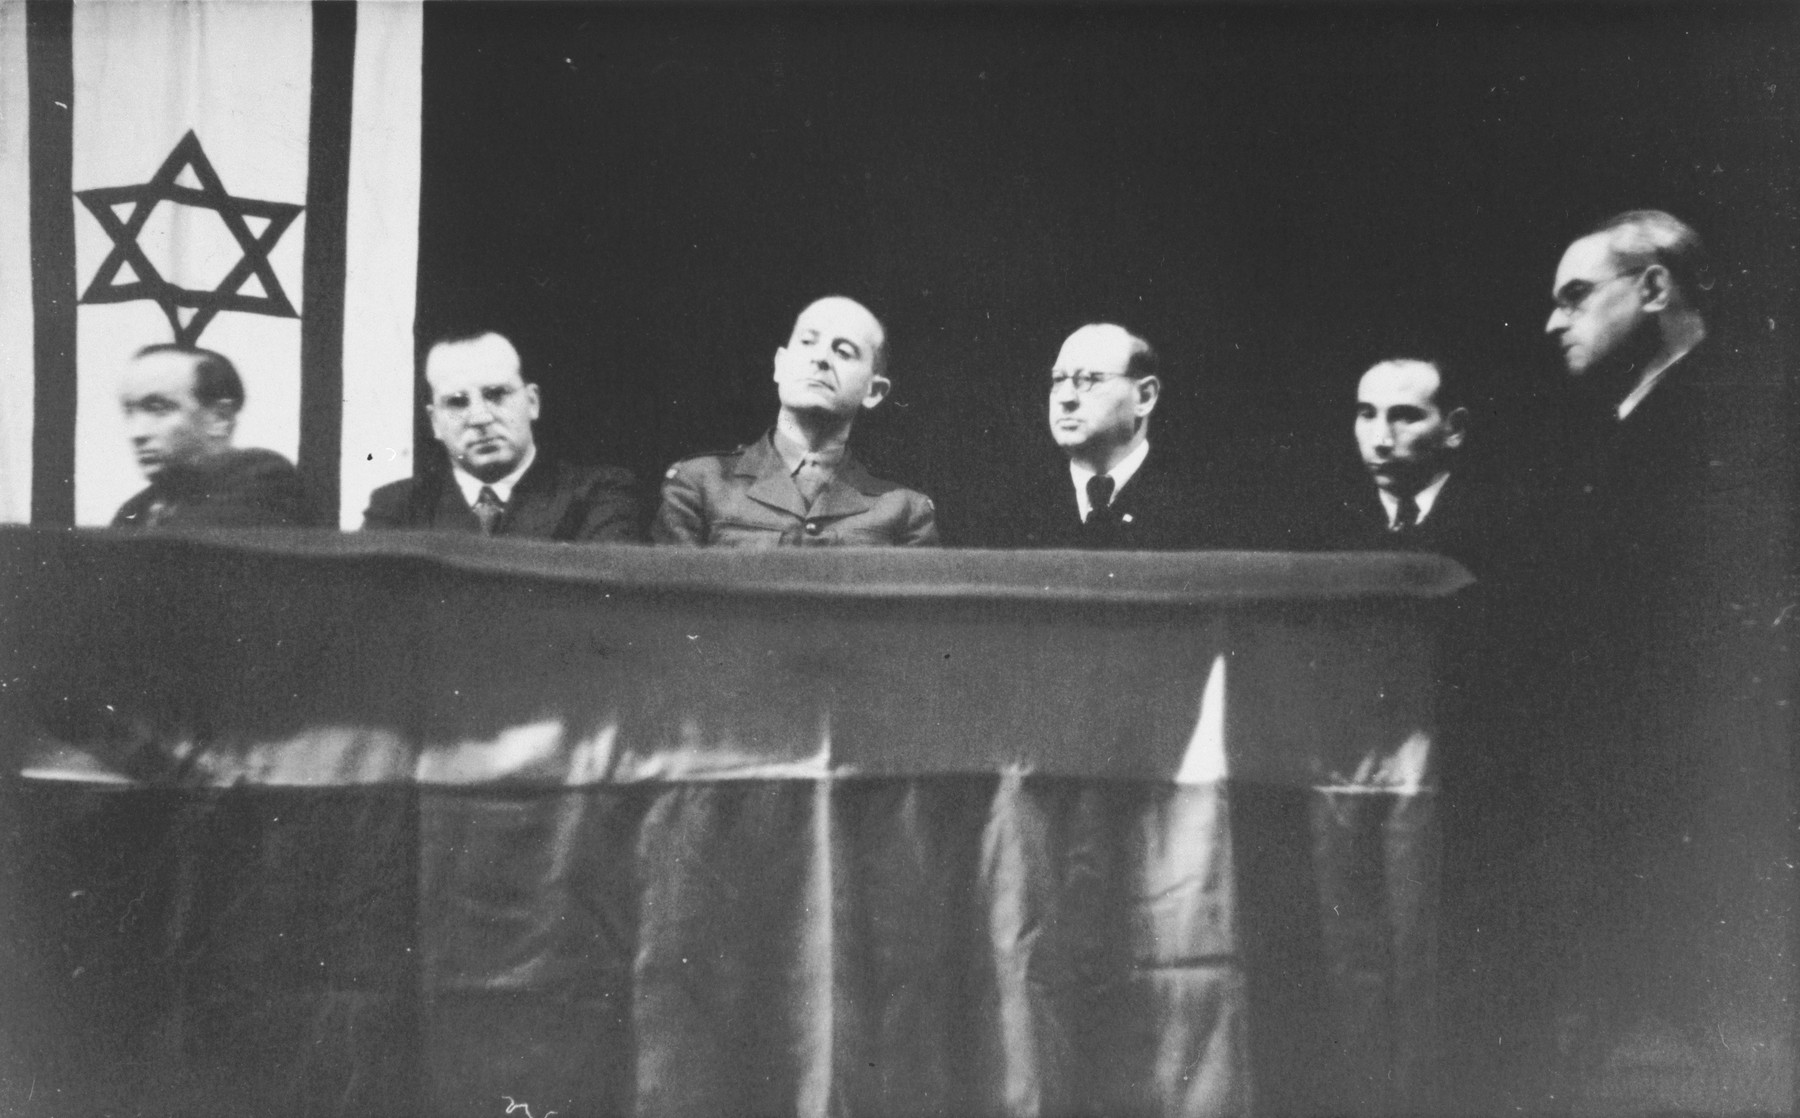 Meeting of the leadership of Jewish displaced persons in the British zone.  Those pictured include Mr. Yunis, Abraham Lipshitz, Norbert Wollheim, and Josef Rosensaft.